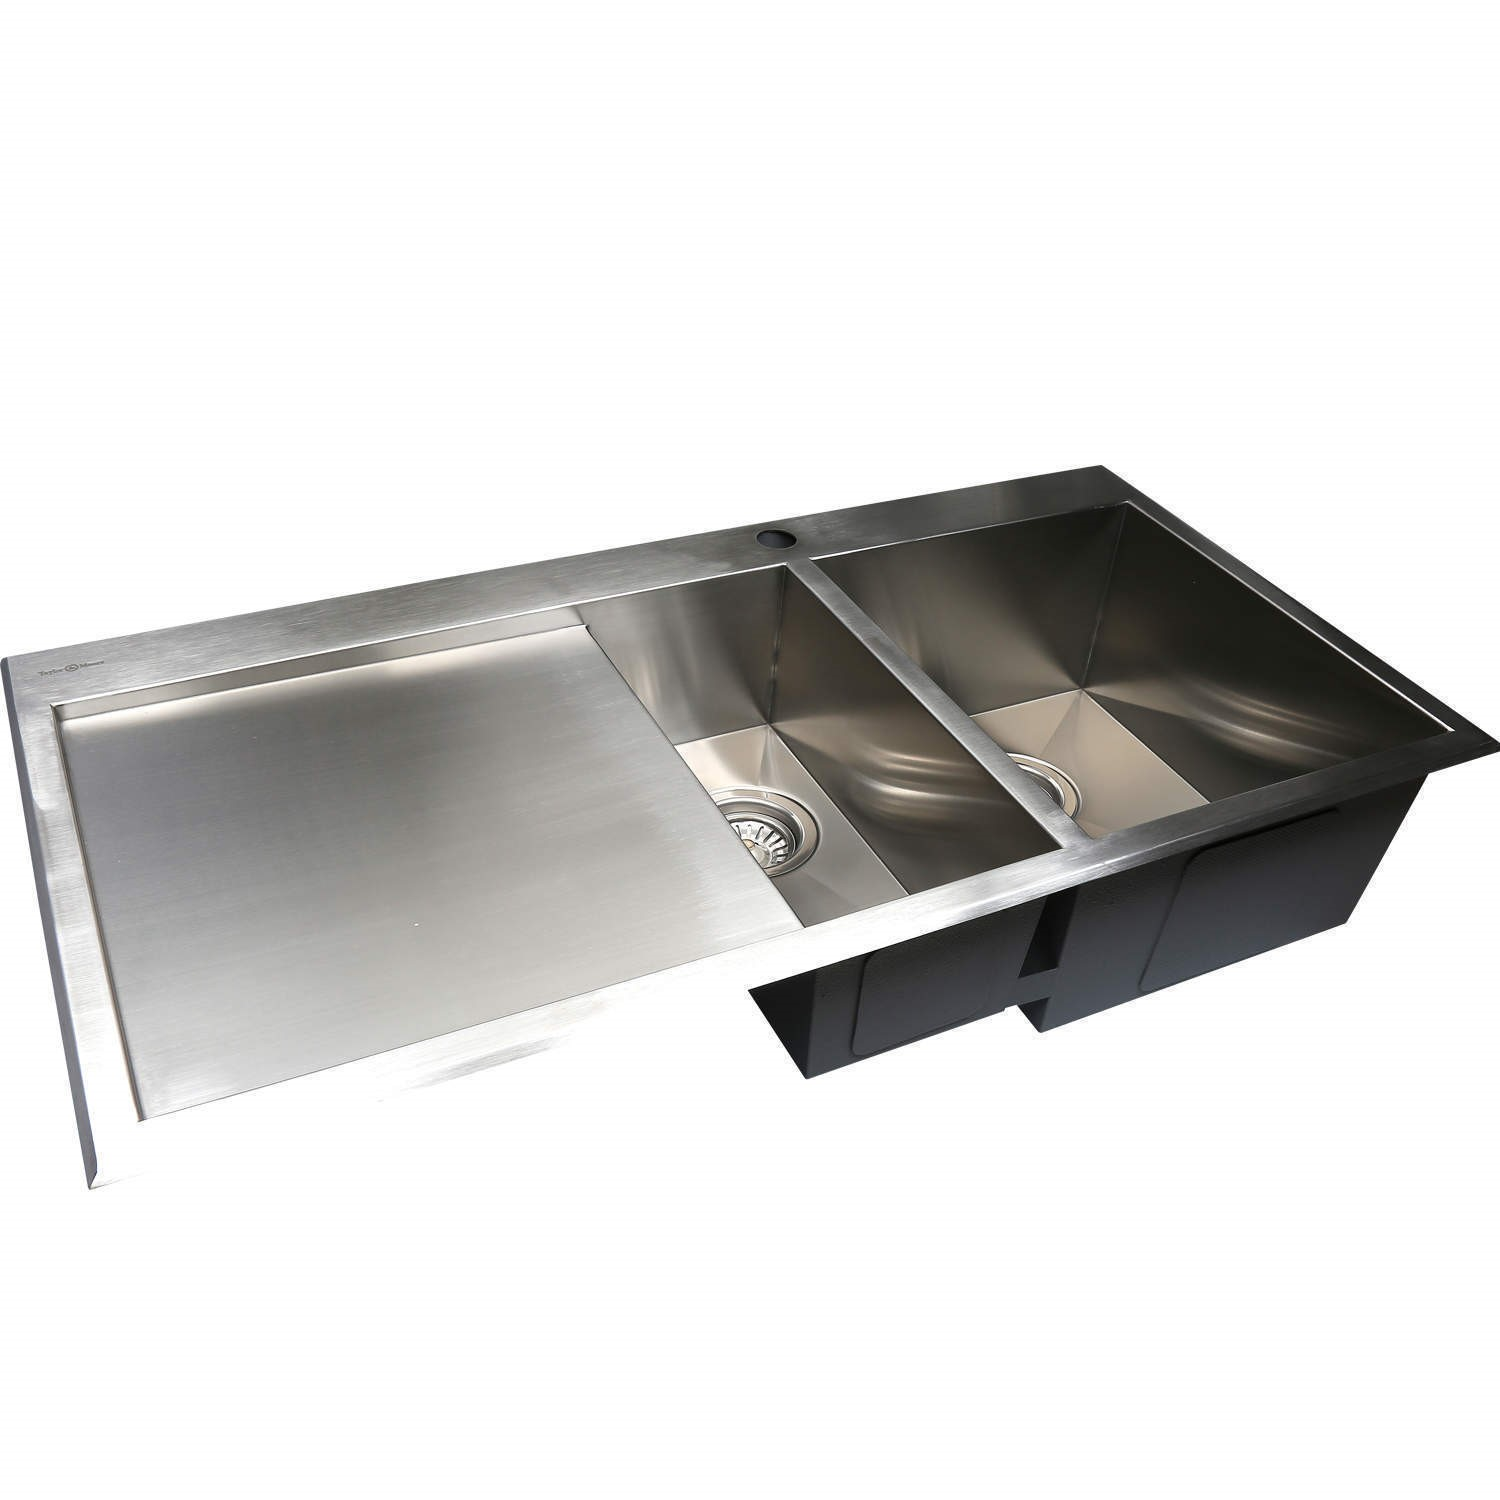 Taylor Amp Moore Square 1 5 Bowl Left Hand Drainer Stainless